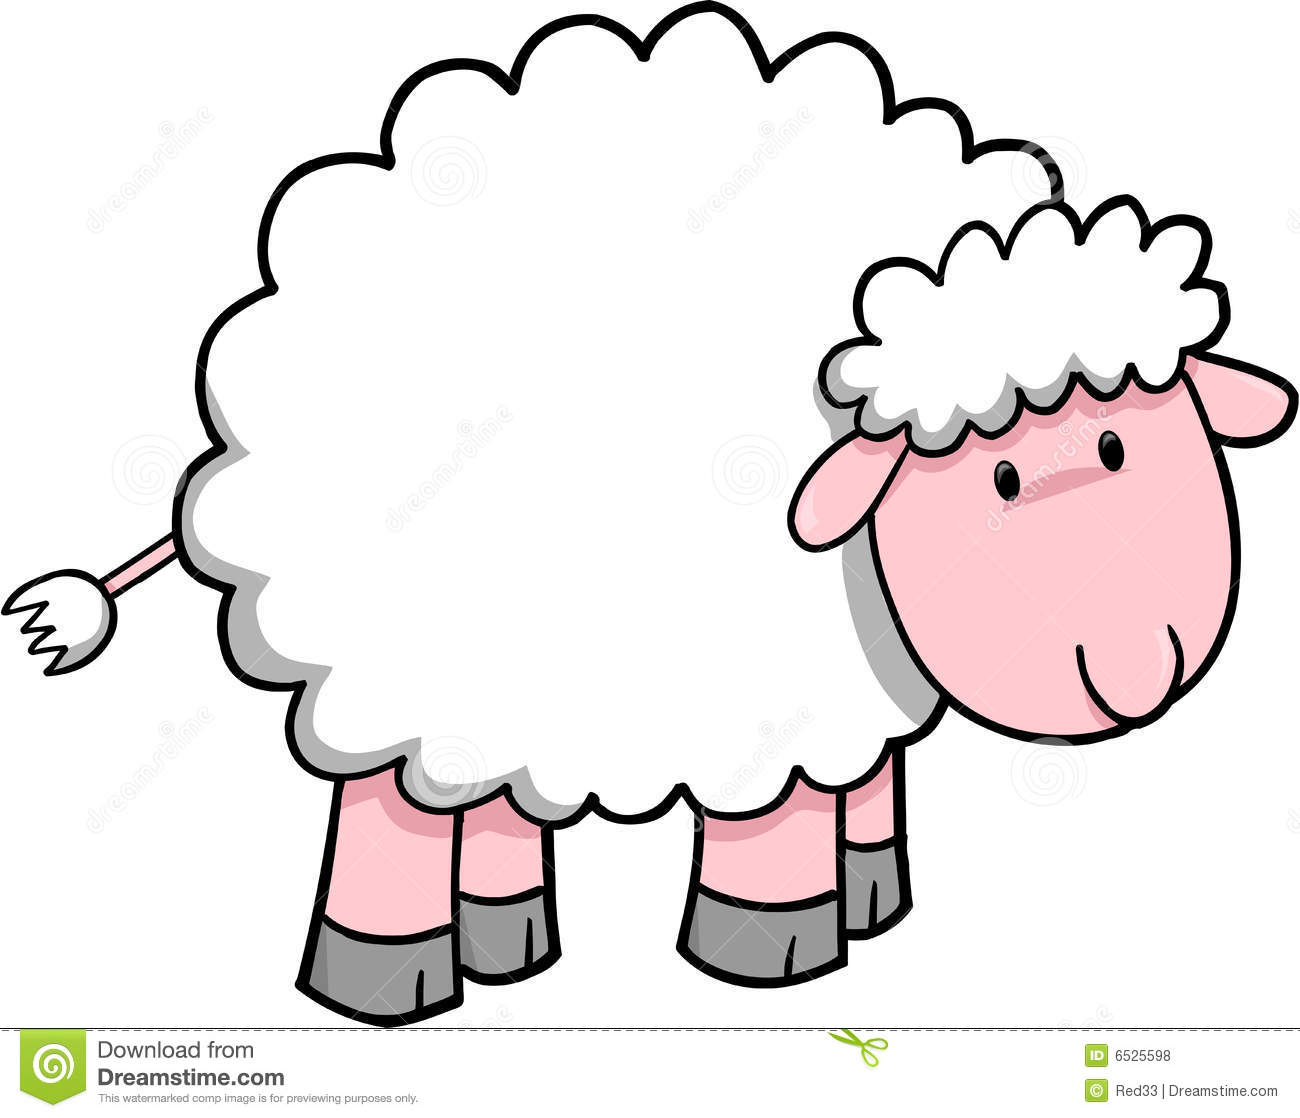 Baby Sheep Clipart Fun Timewebsite Clipa-Baby Sheep Clipart Fun Timewebsite Clipart-9